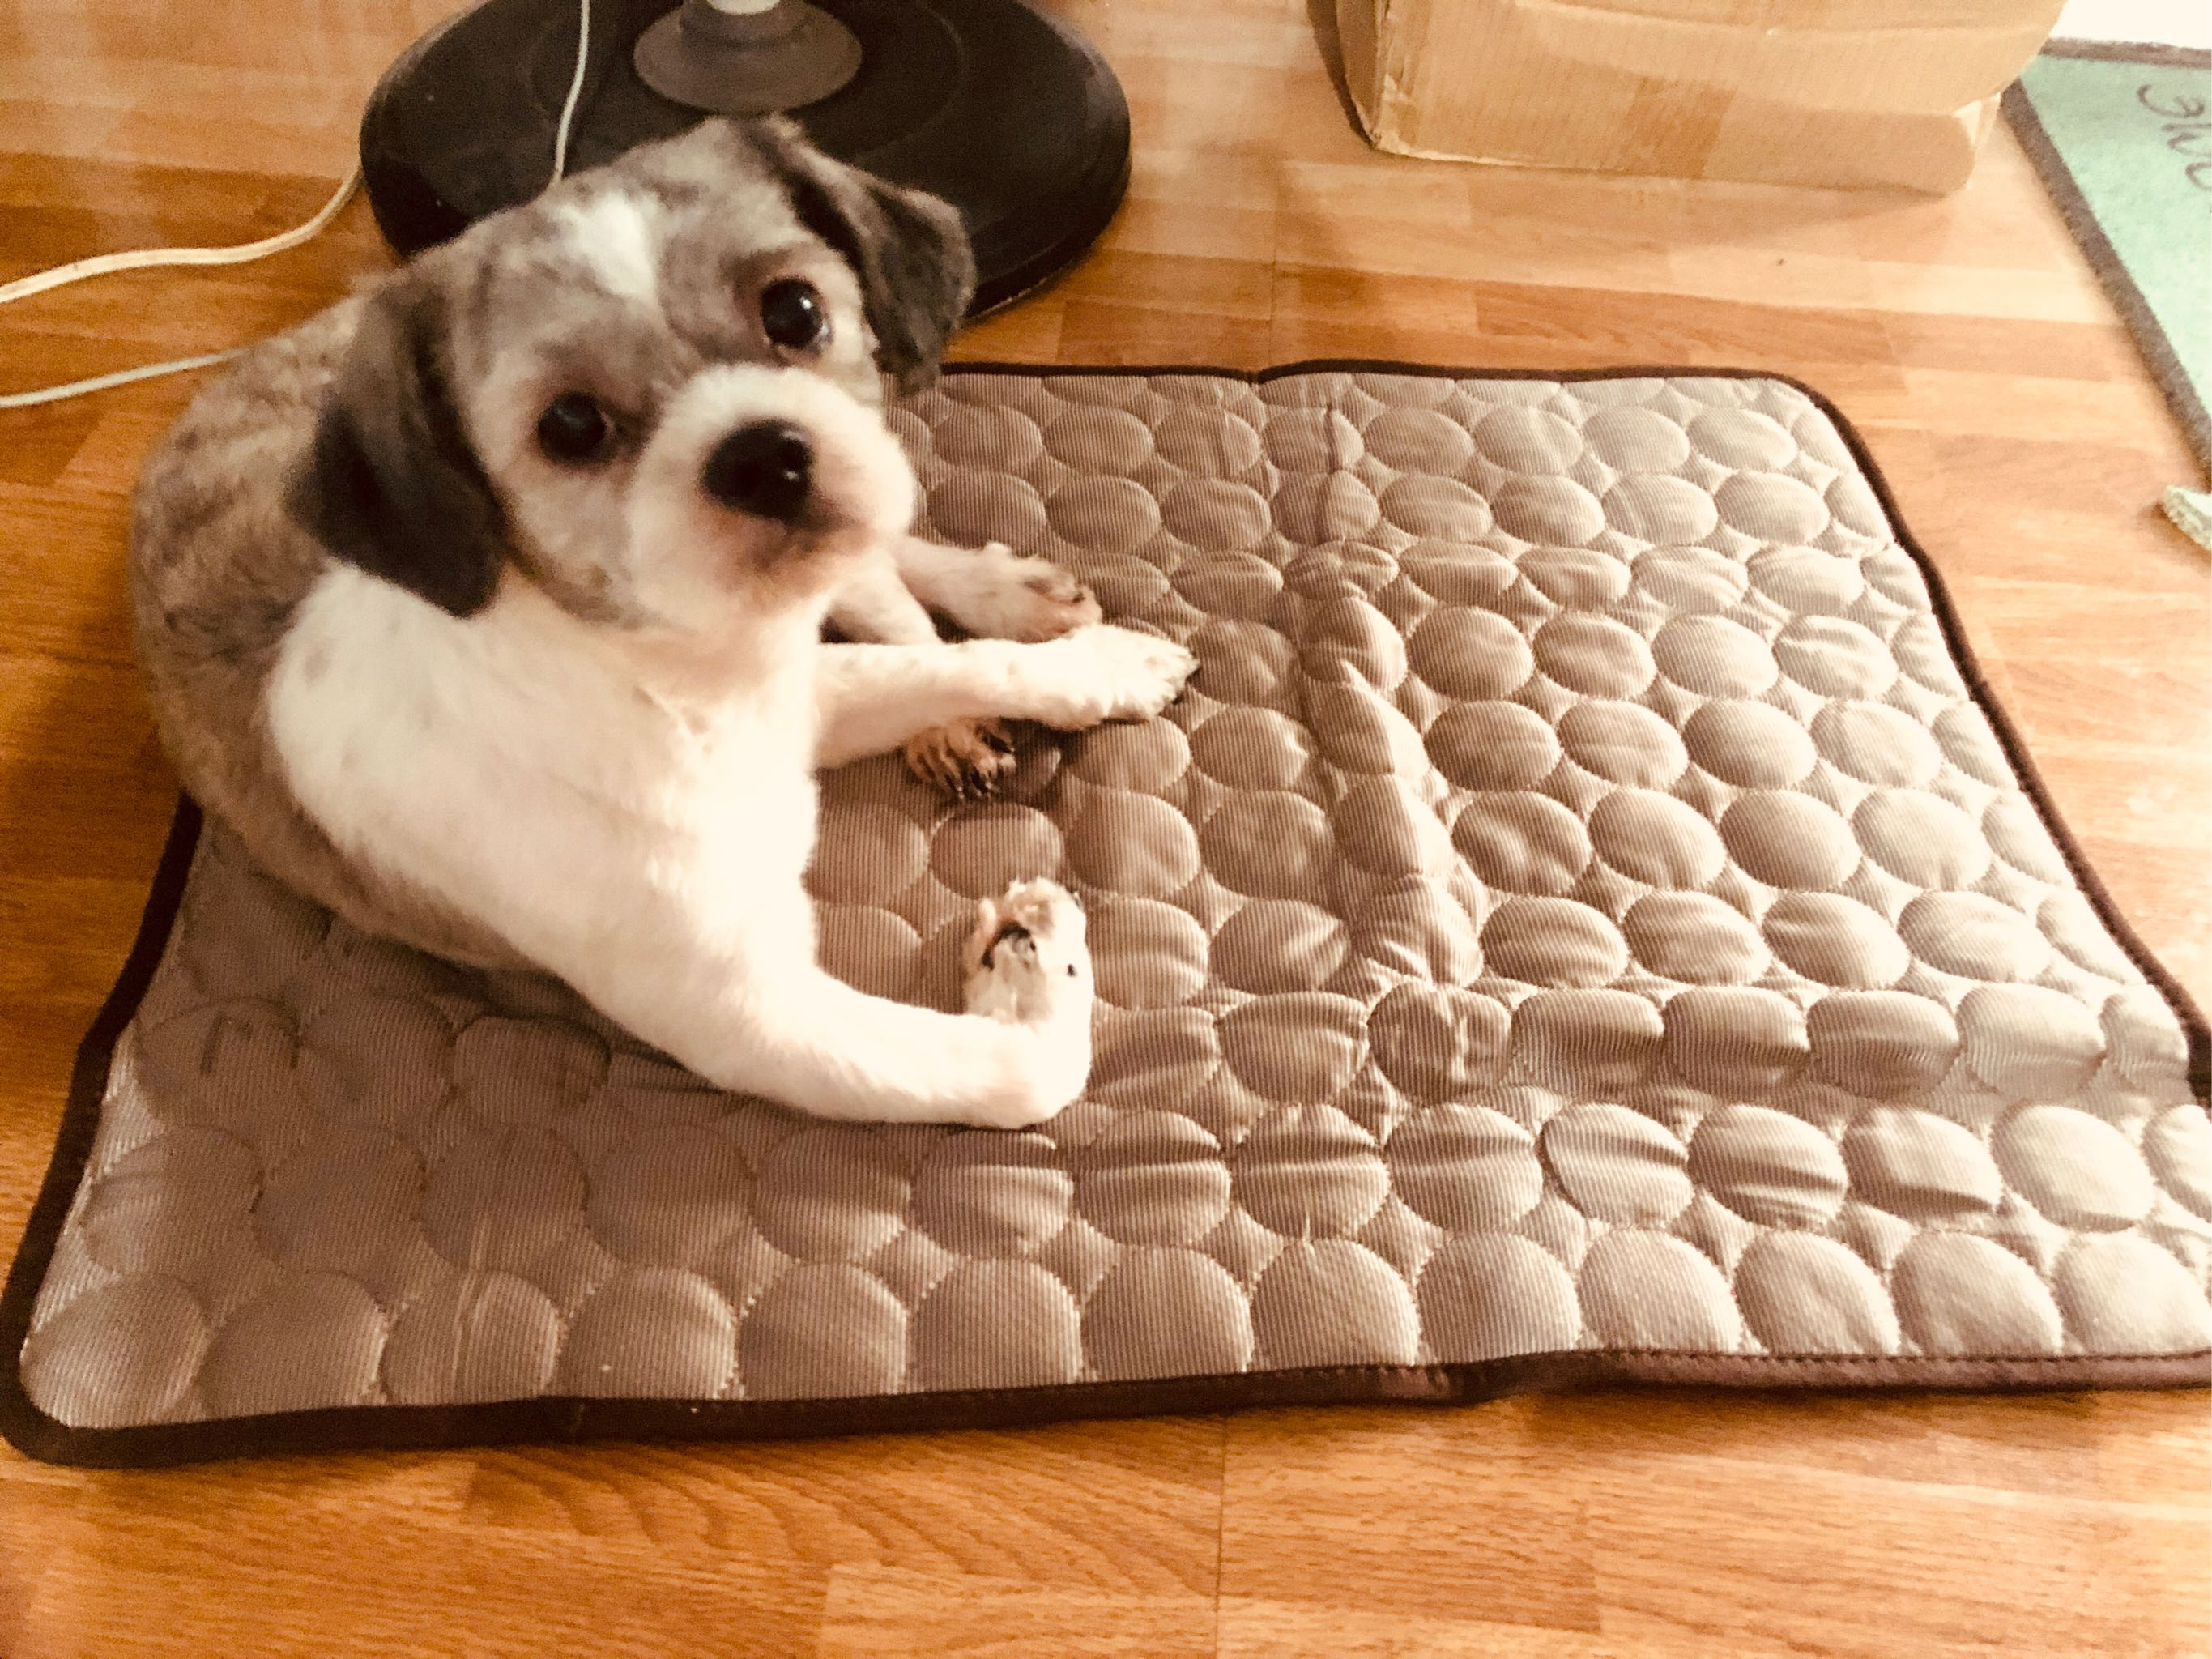 Summer Pet Cooling Ice Mat Portable Travel Cat Puppy Dog Sleeping Blanket Mattress Sofa Cushion for Kennel Bed Cage